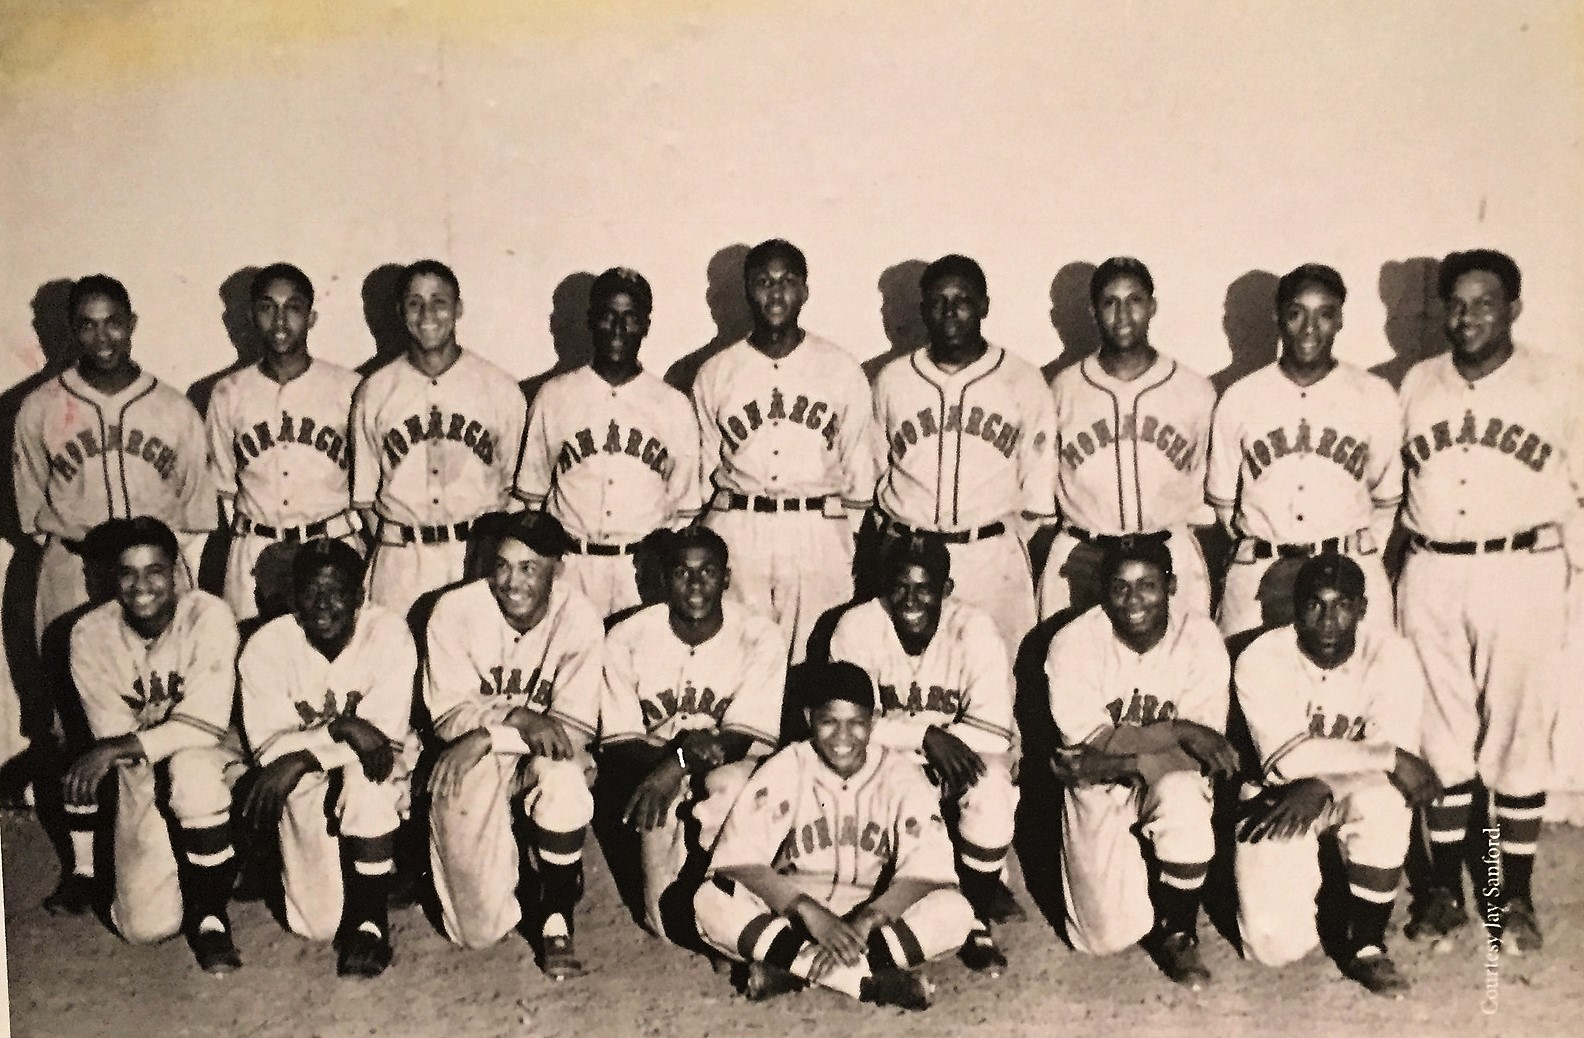 1934 Kansas City Monarchs